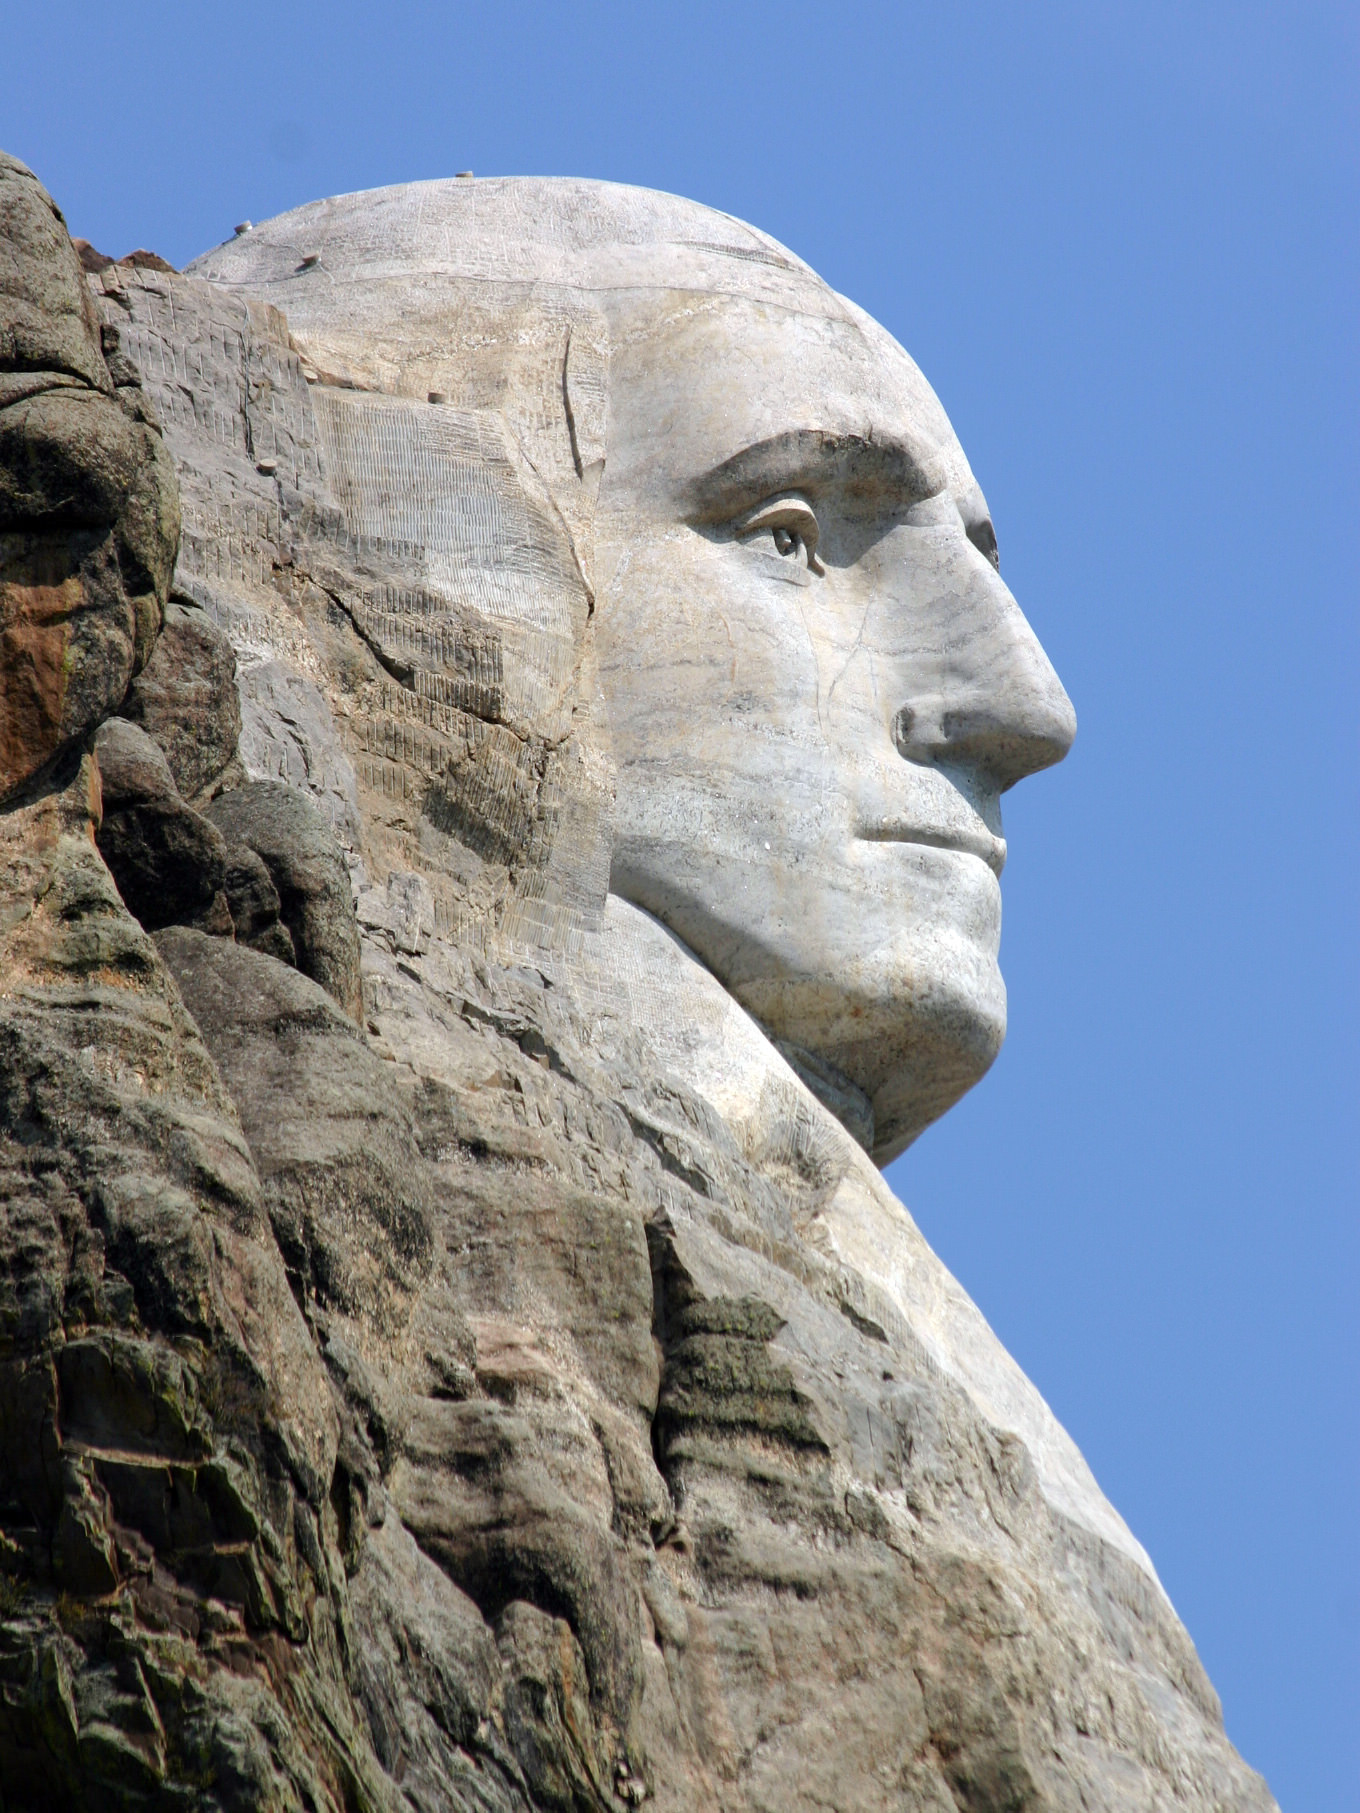 A side profile view of George Washington at Mount Rushmore